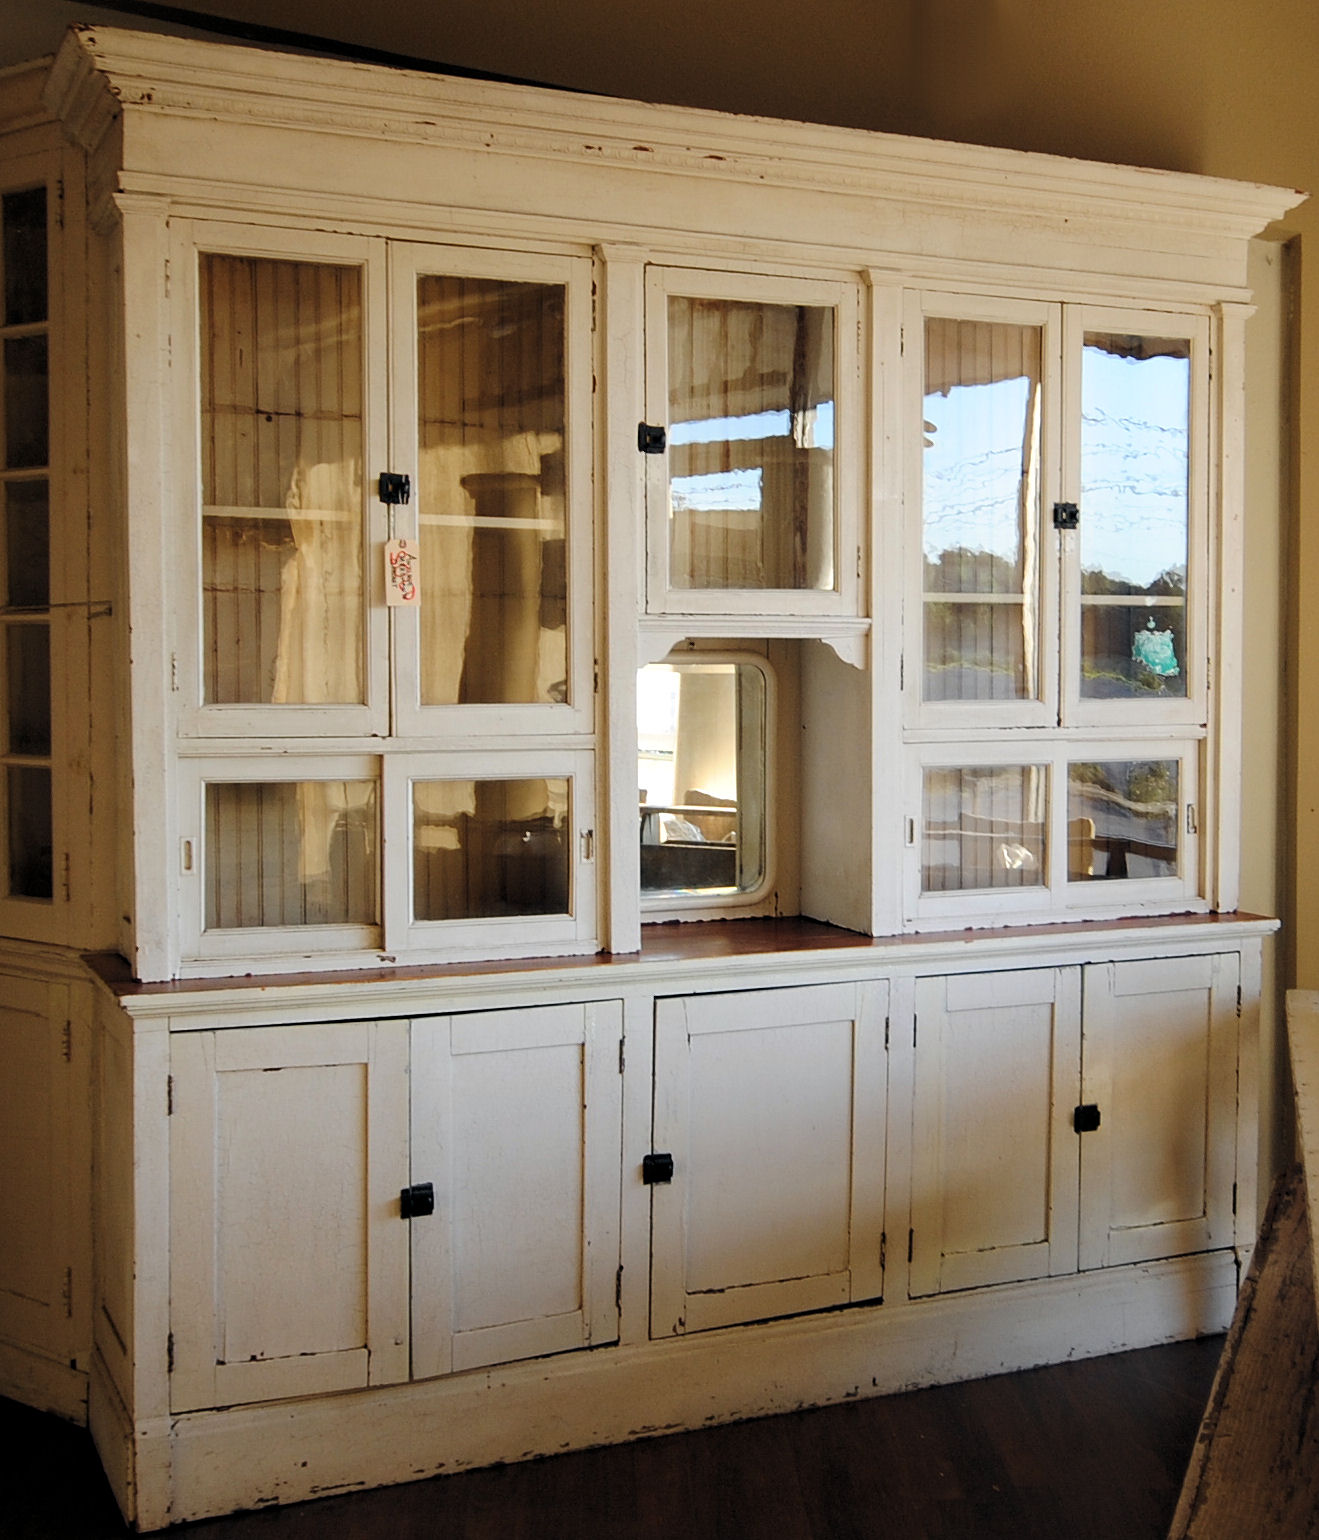 Farmhouse Kitchen Cabinets: LaurieAnna's Vintage Home: Farmhouse Friday